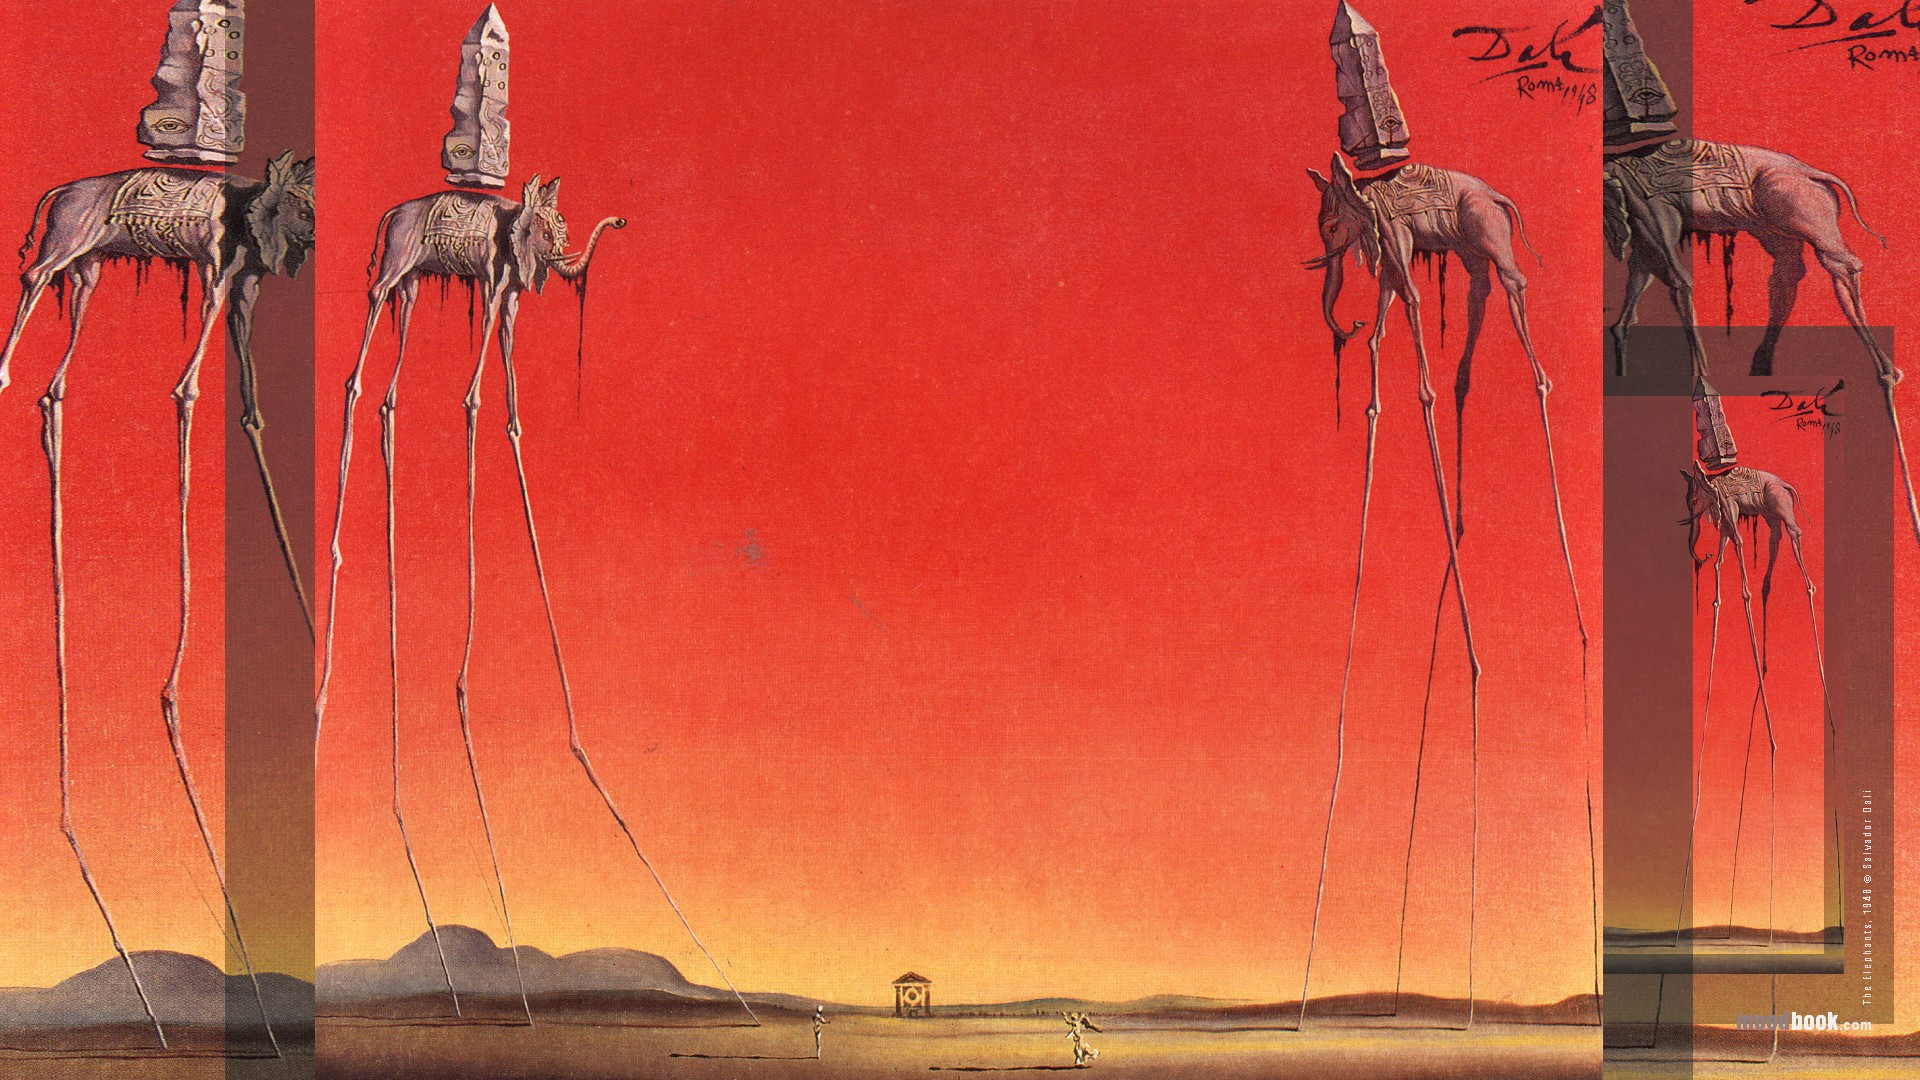 Salvador dali elephants images amp pictures becuo